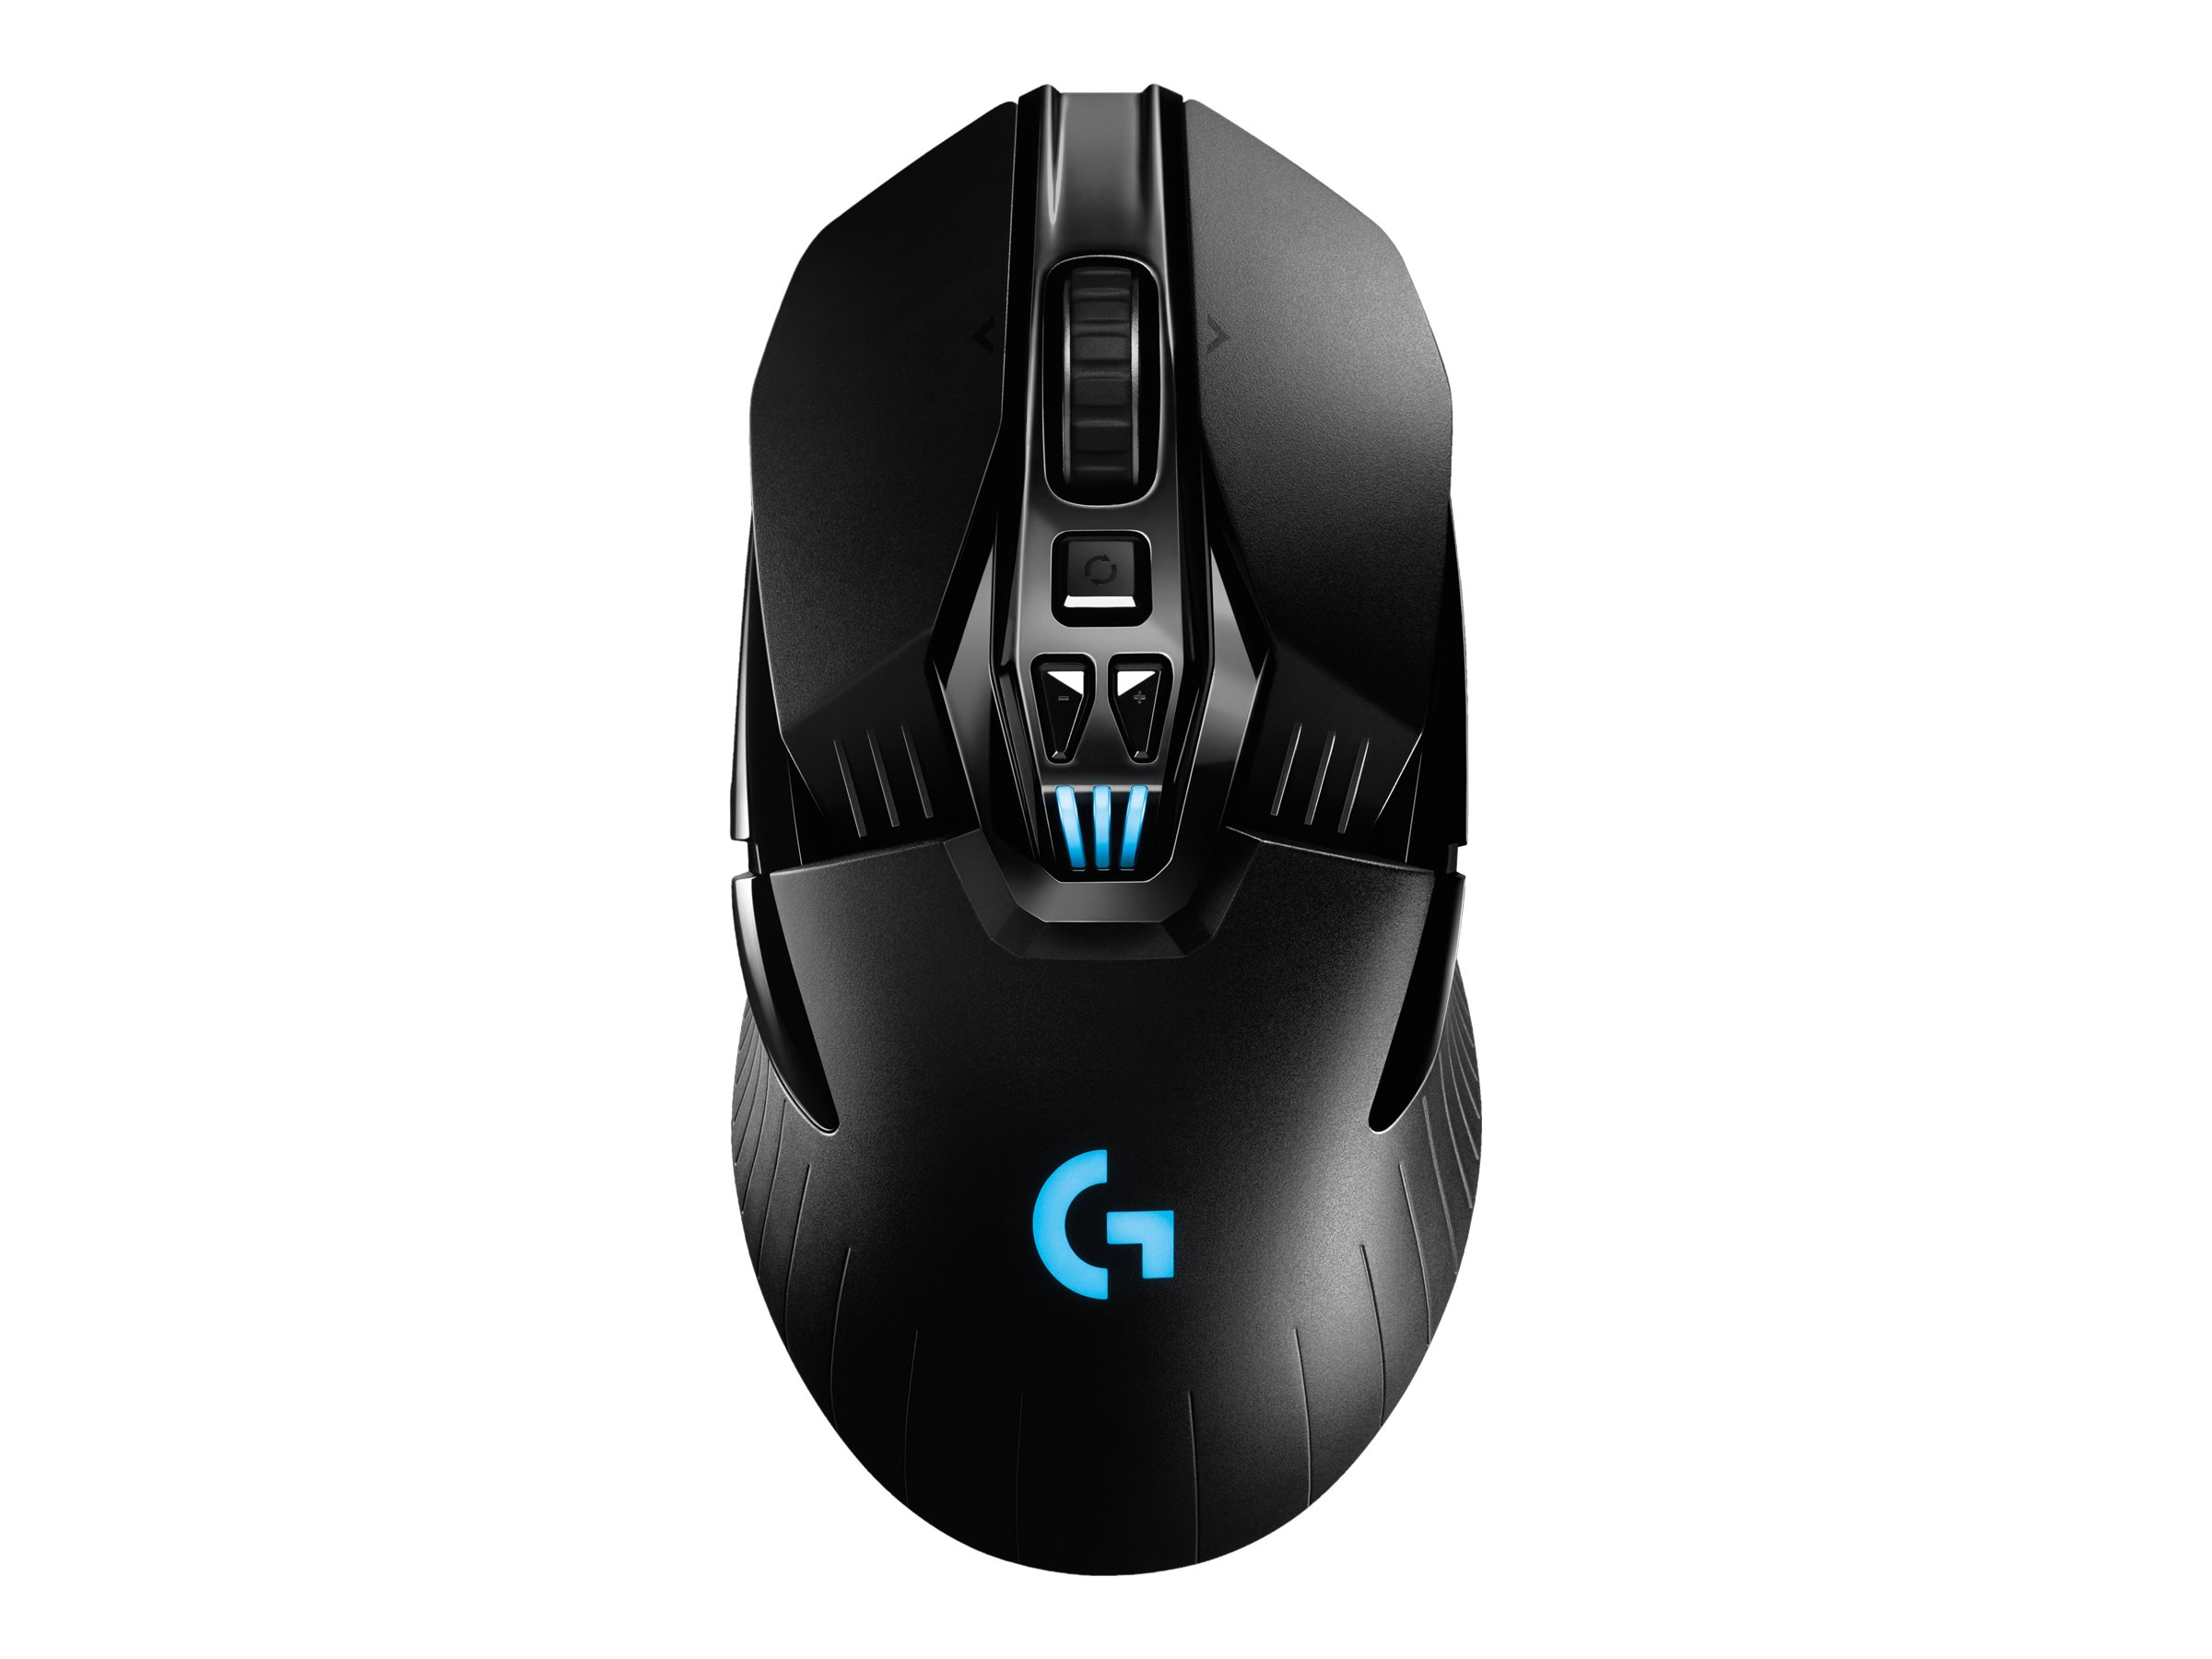 S Logitech 910 Logitech Gaming Mouse G903 new